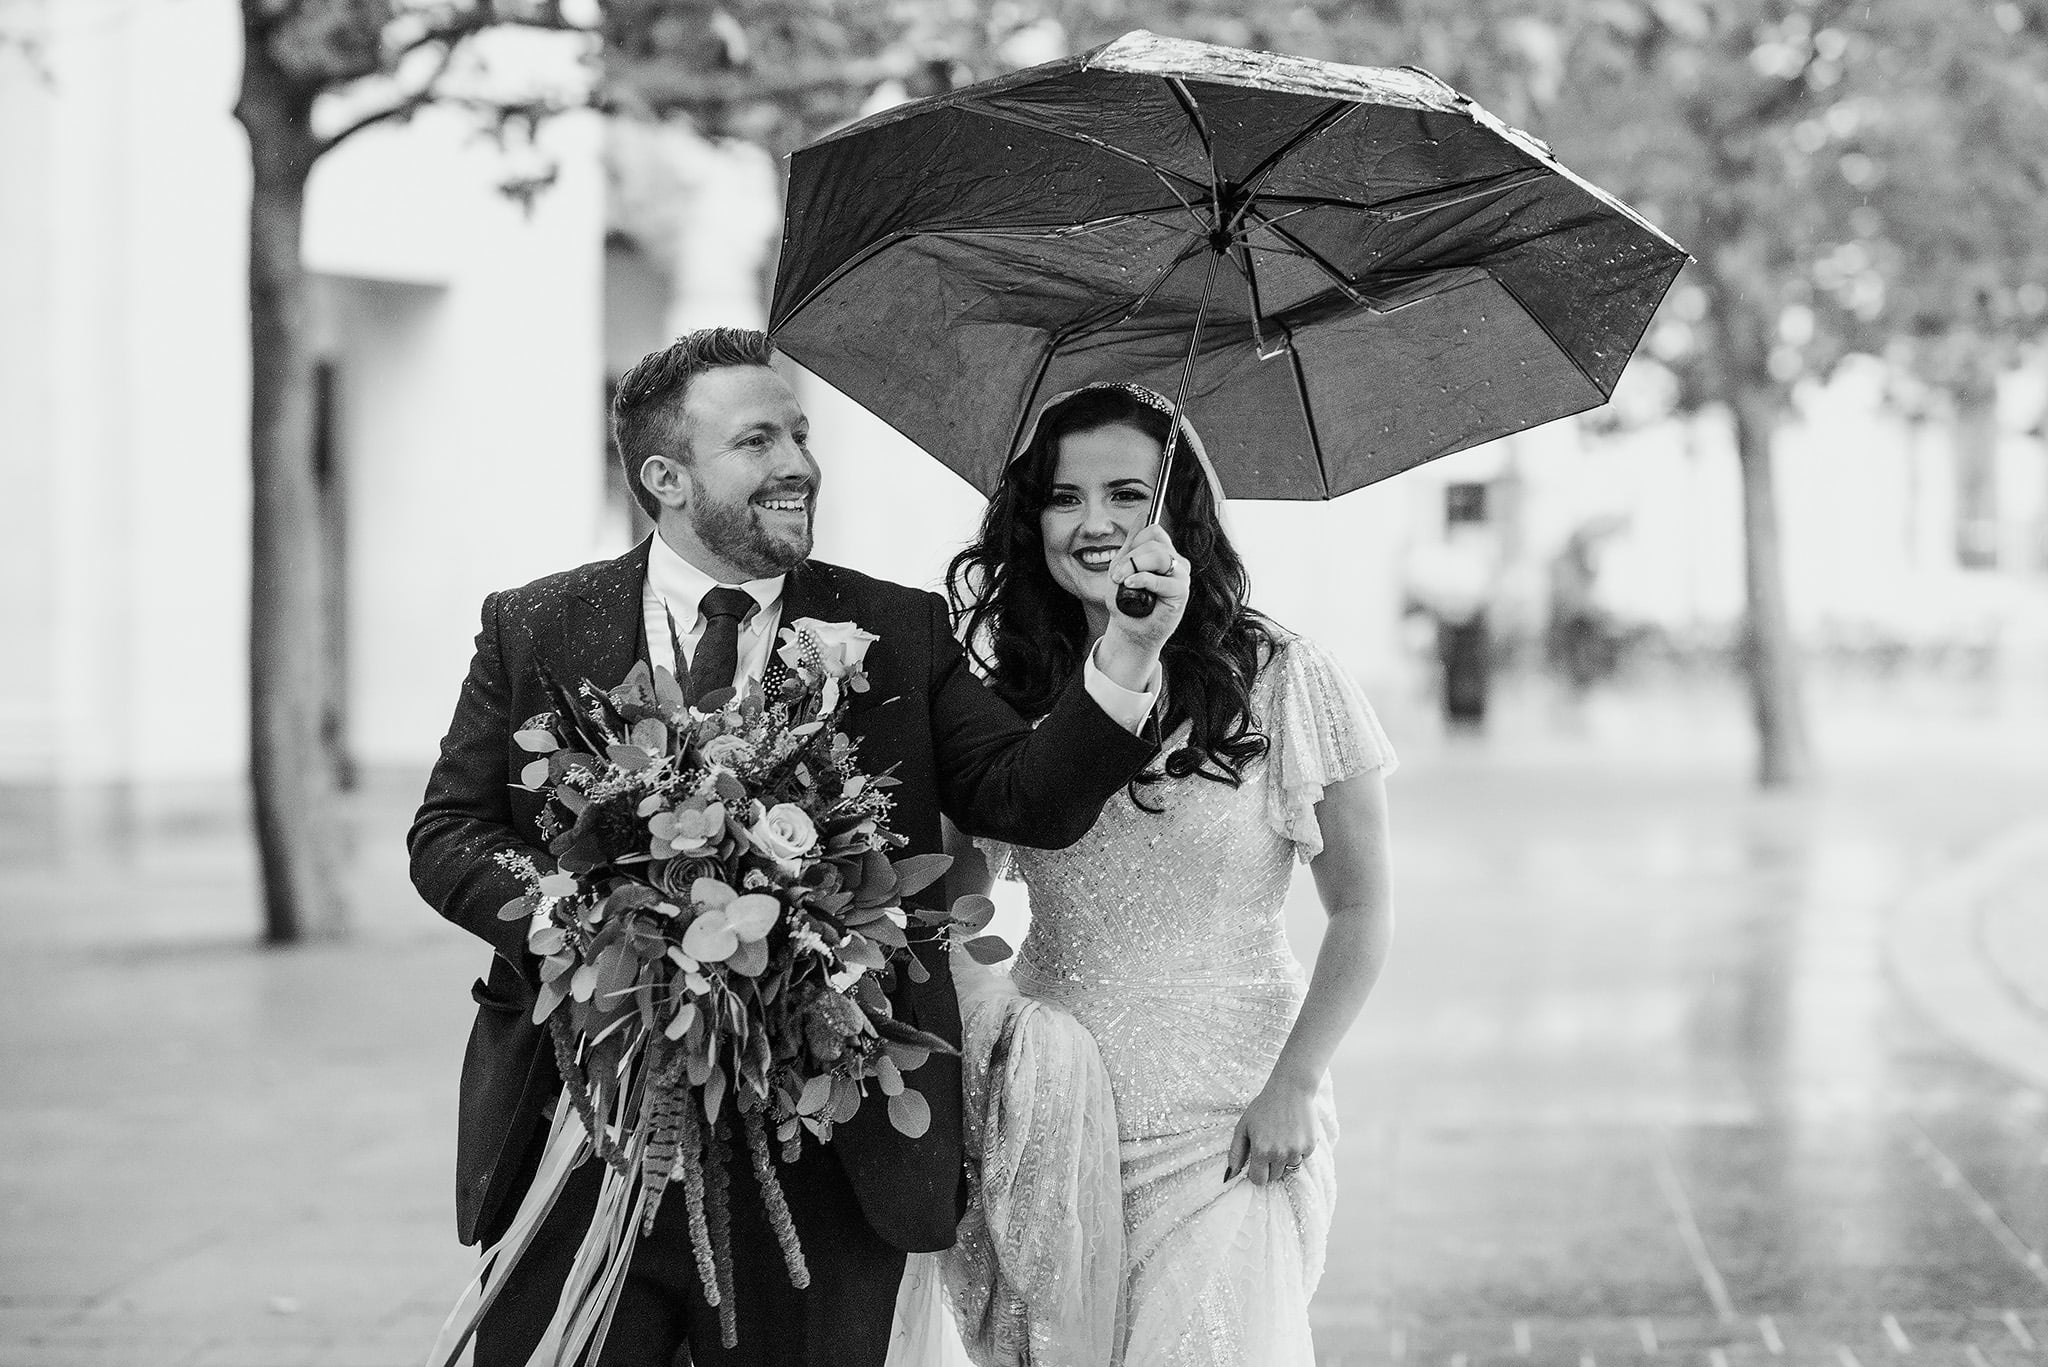 London wedding portraits in the rain